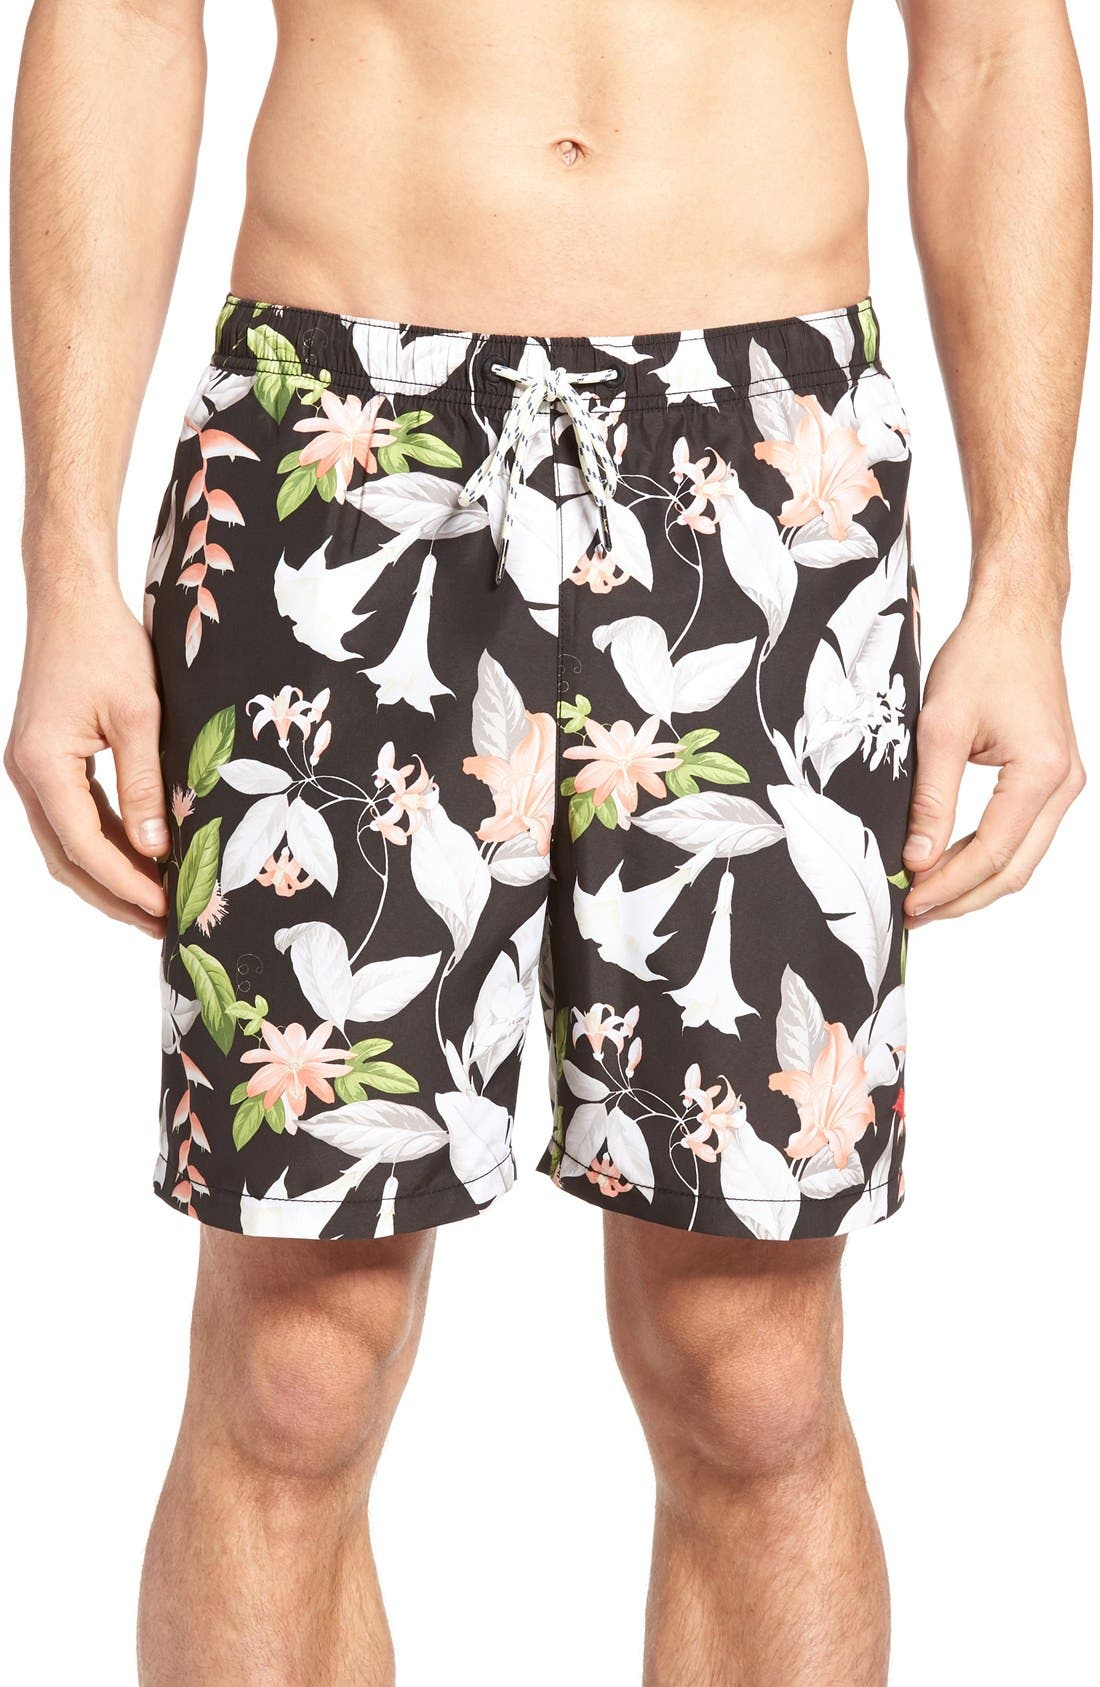 Alternate Image 1 Selected - Tommy Bahama Naples Brego Blooms Swim Trunks